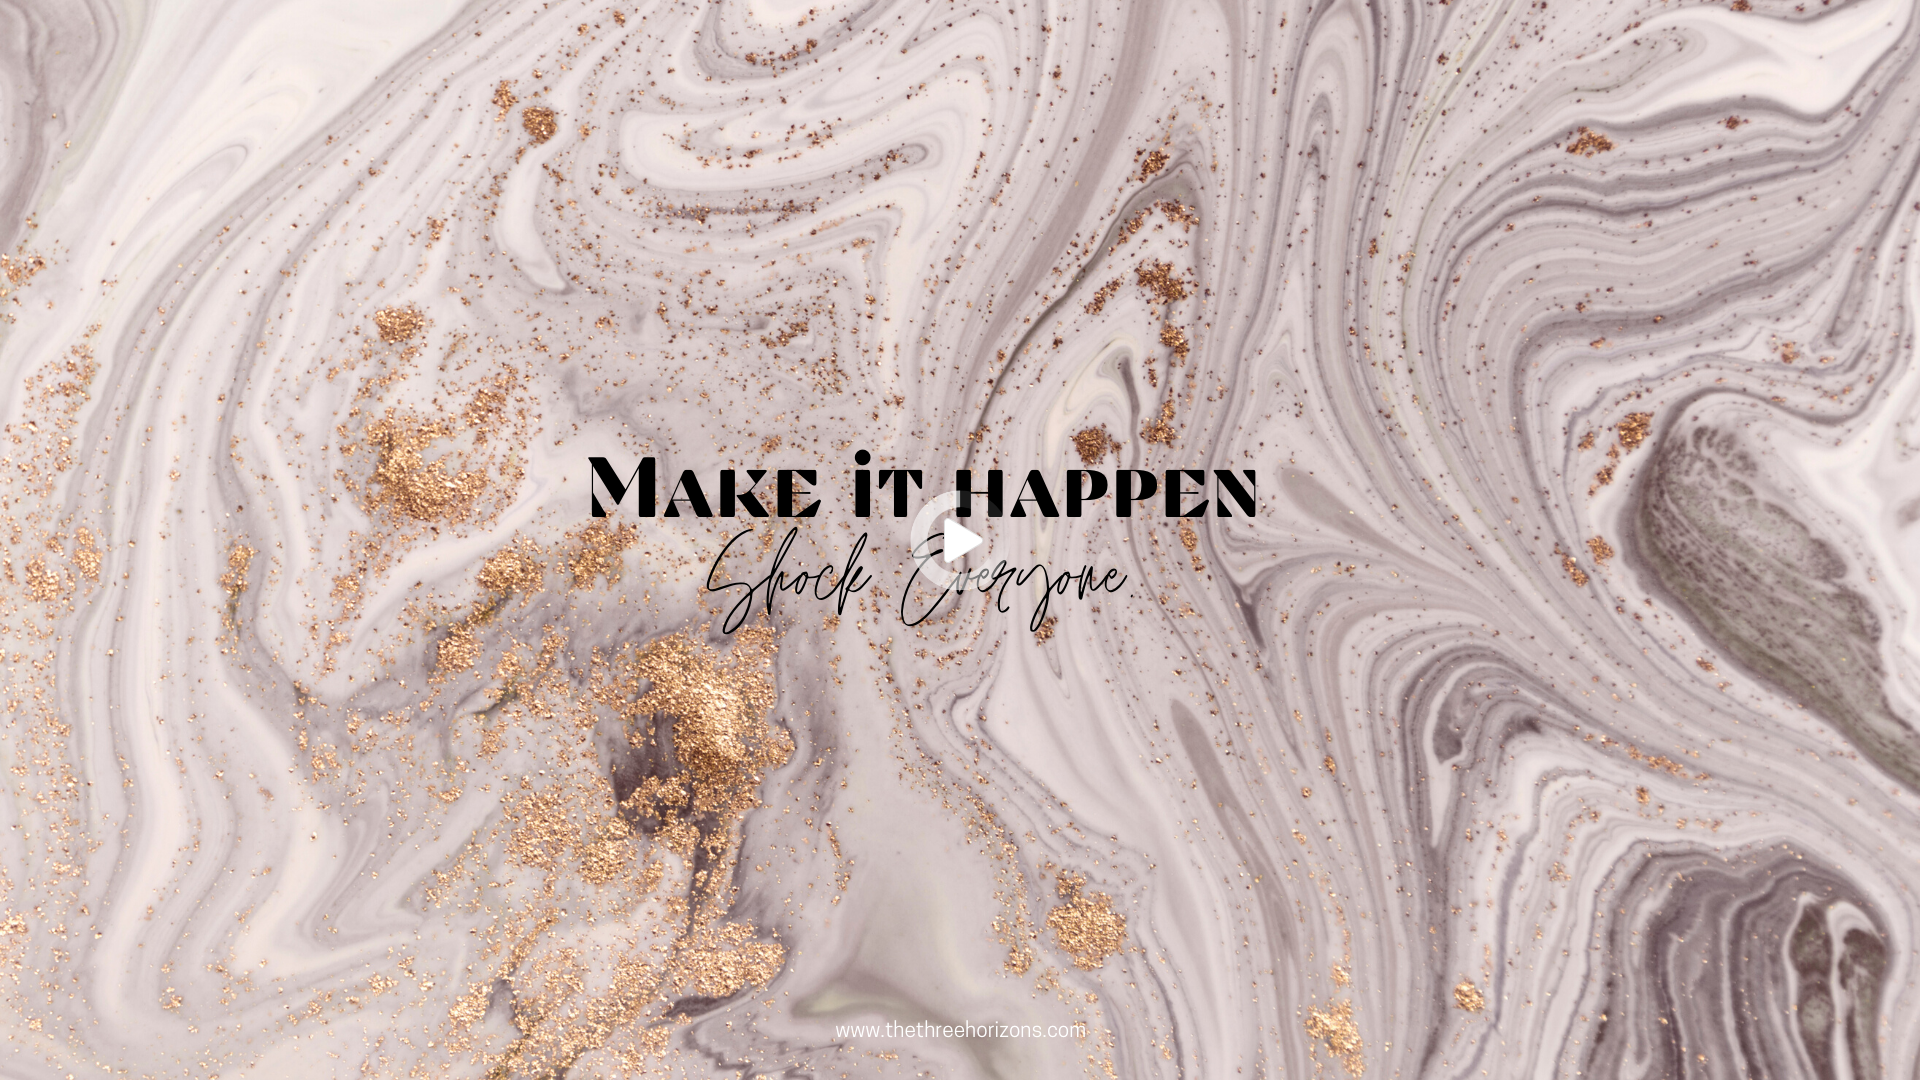 Free Marble Laptop Wallpapers The Three Horizons In 2021 Laptop Wallpaper Cute Laptop Wallpaper Computer Wallpaper Desktop Wallpapers